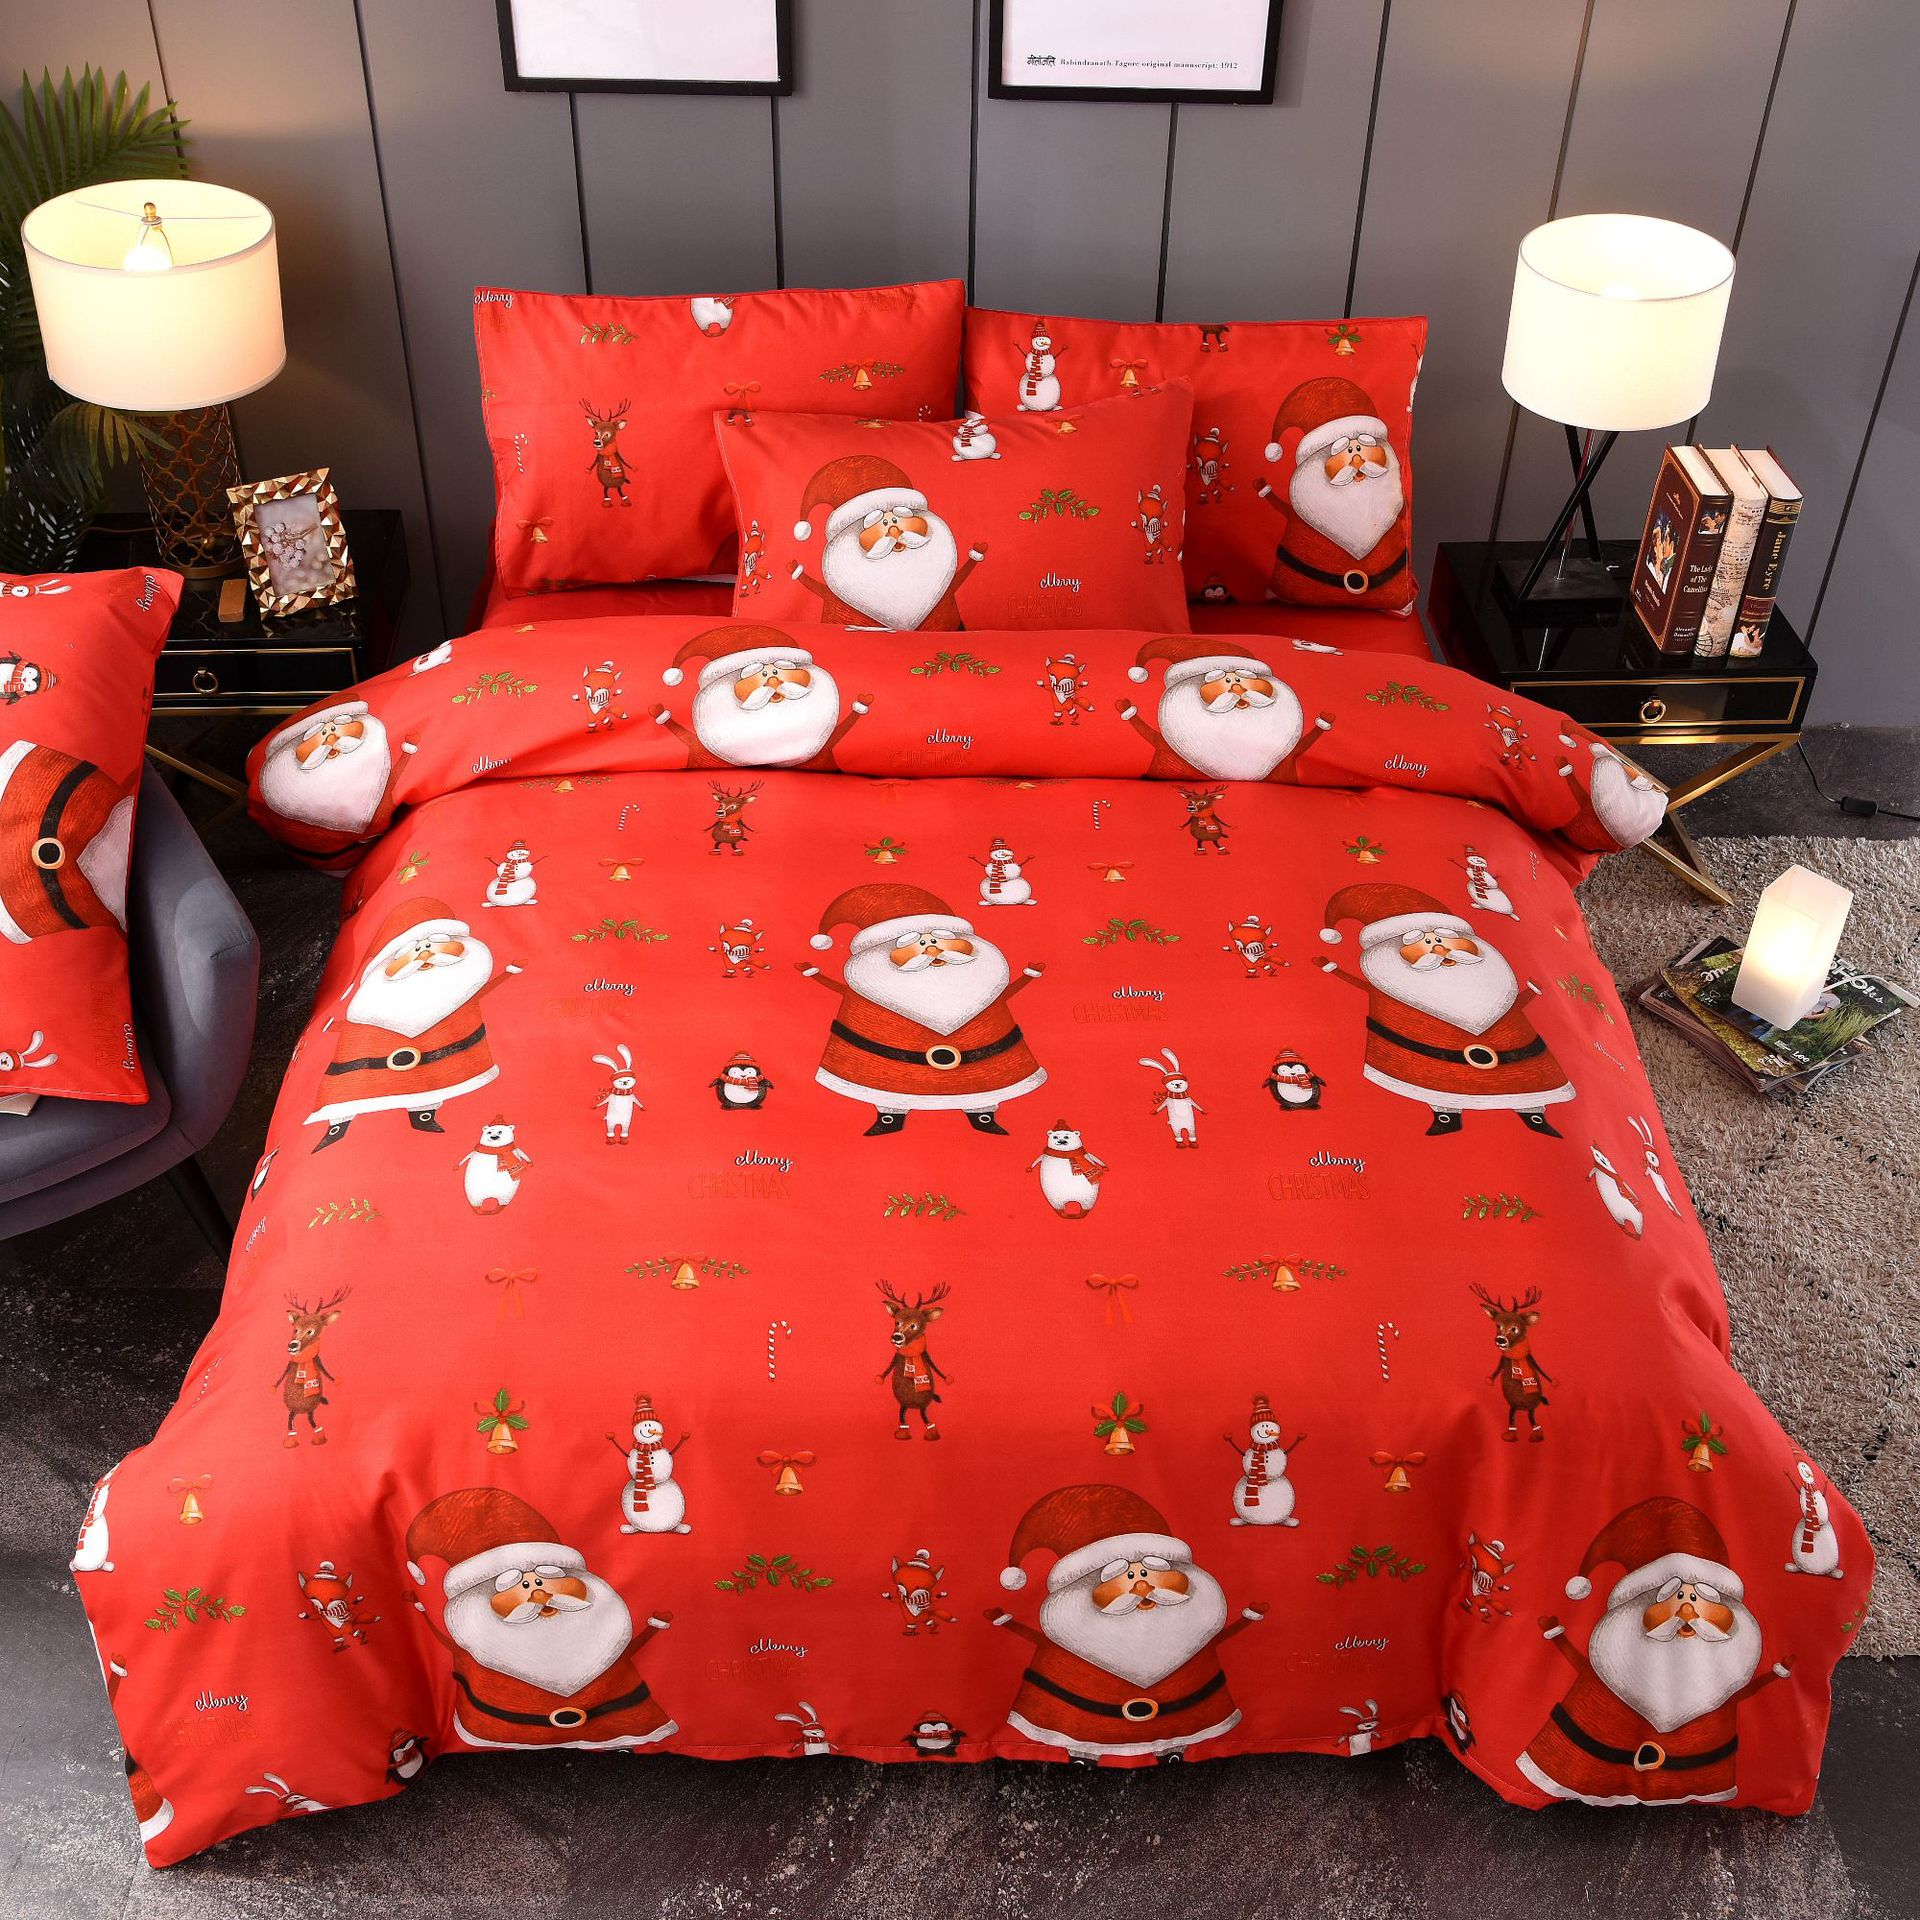 AliExpress Christmas Joy Santa Claus Happy Gift 3D Three-piece Bedding Set